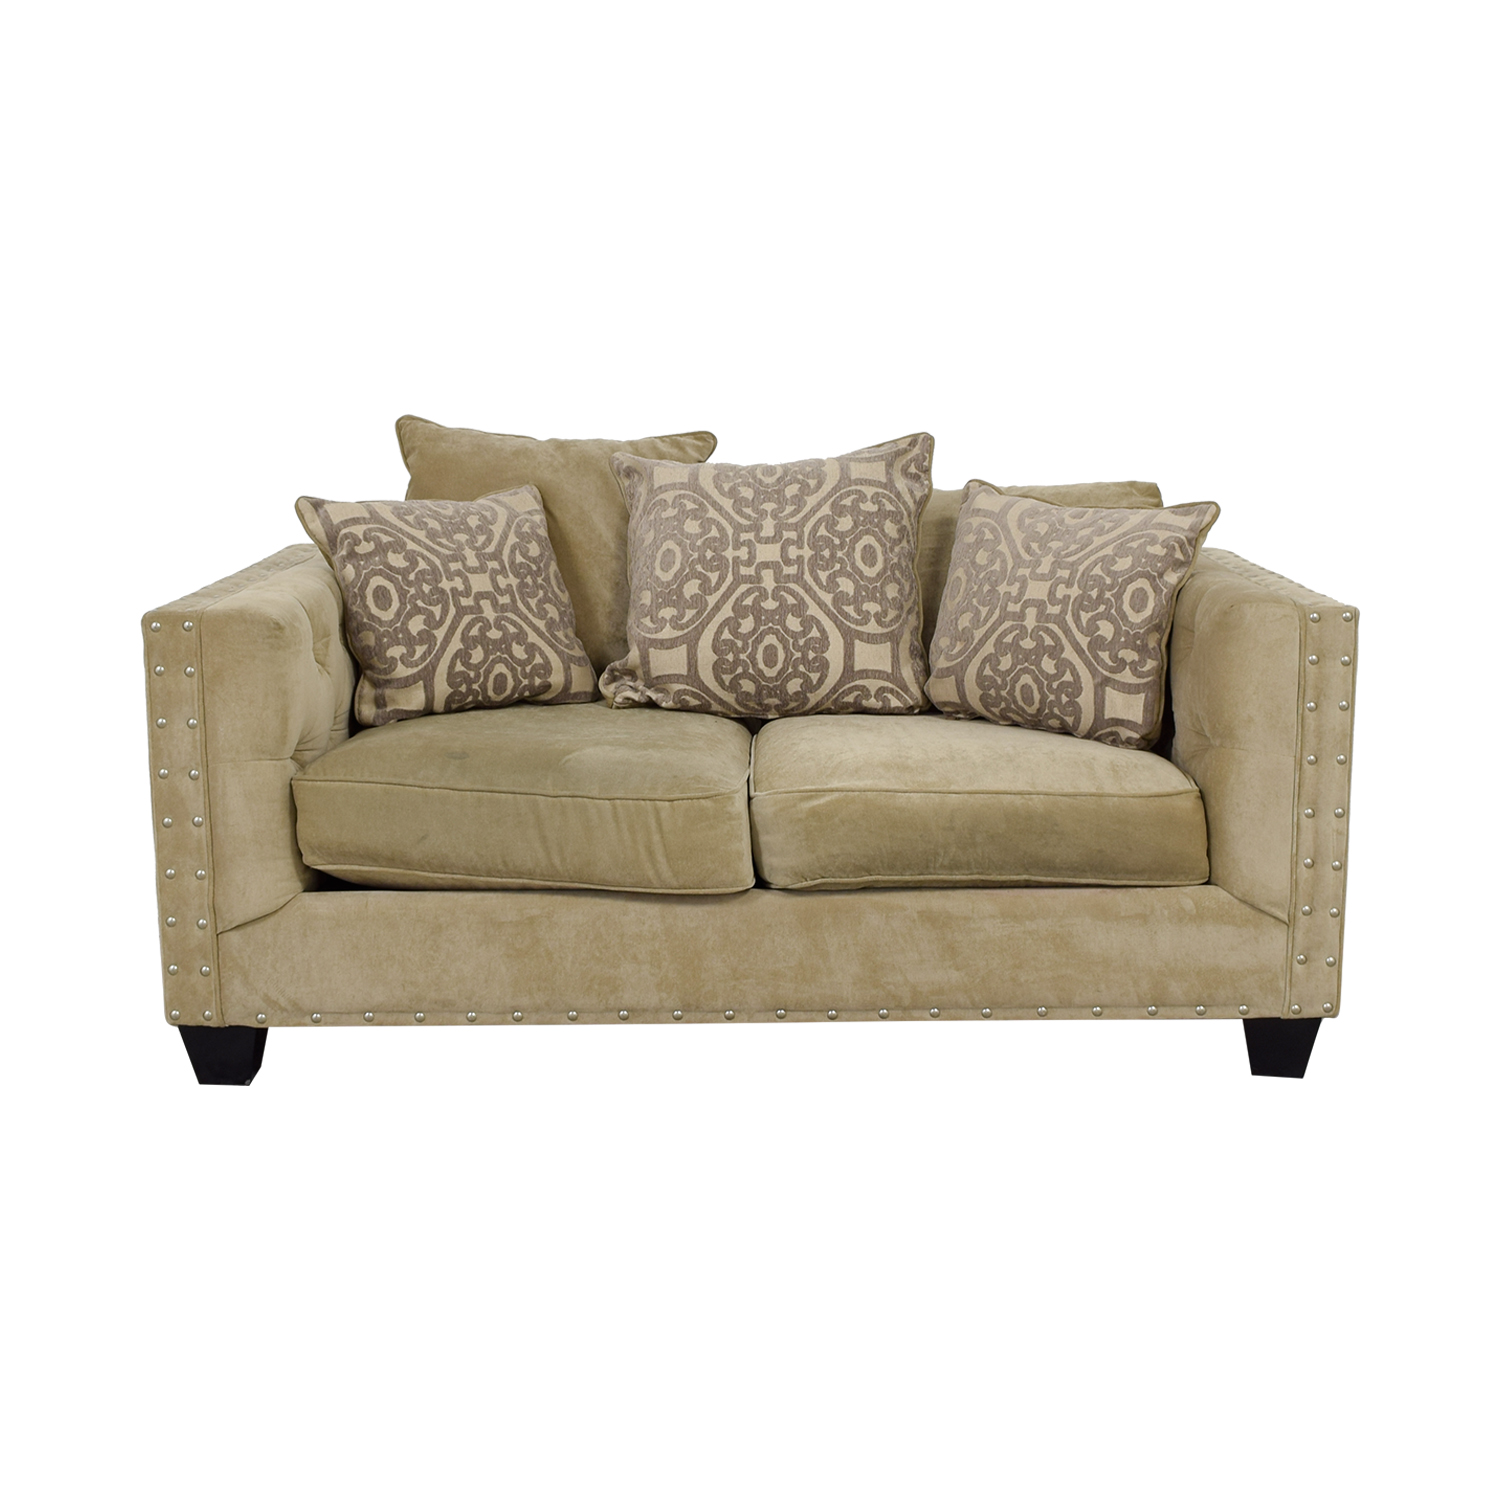 Excellent 90 Off Raymour Flanigan Raymour Flanigan Cindy Crawford Beige Suede Loveseat Sofas Caraccident5 Cool Chair Designs And Ideas Caraccident5Info